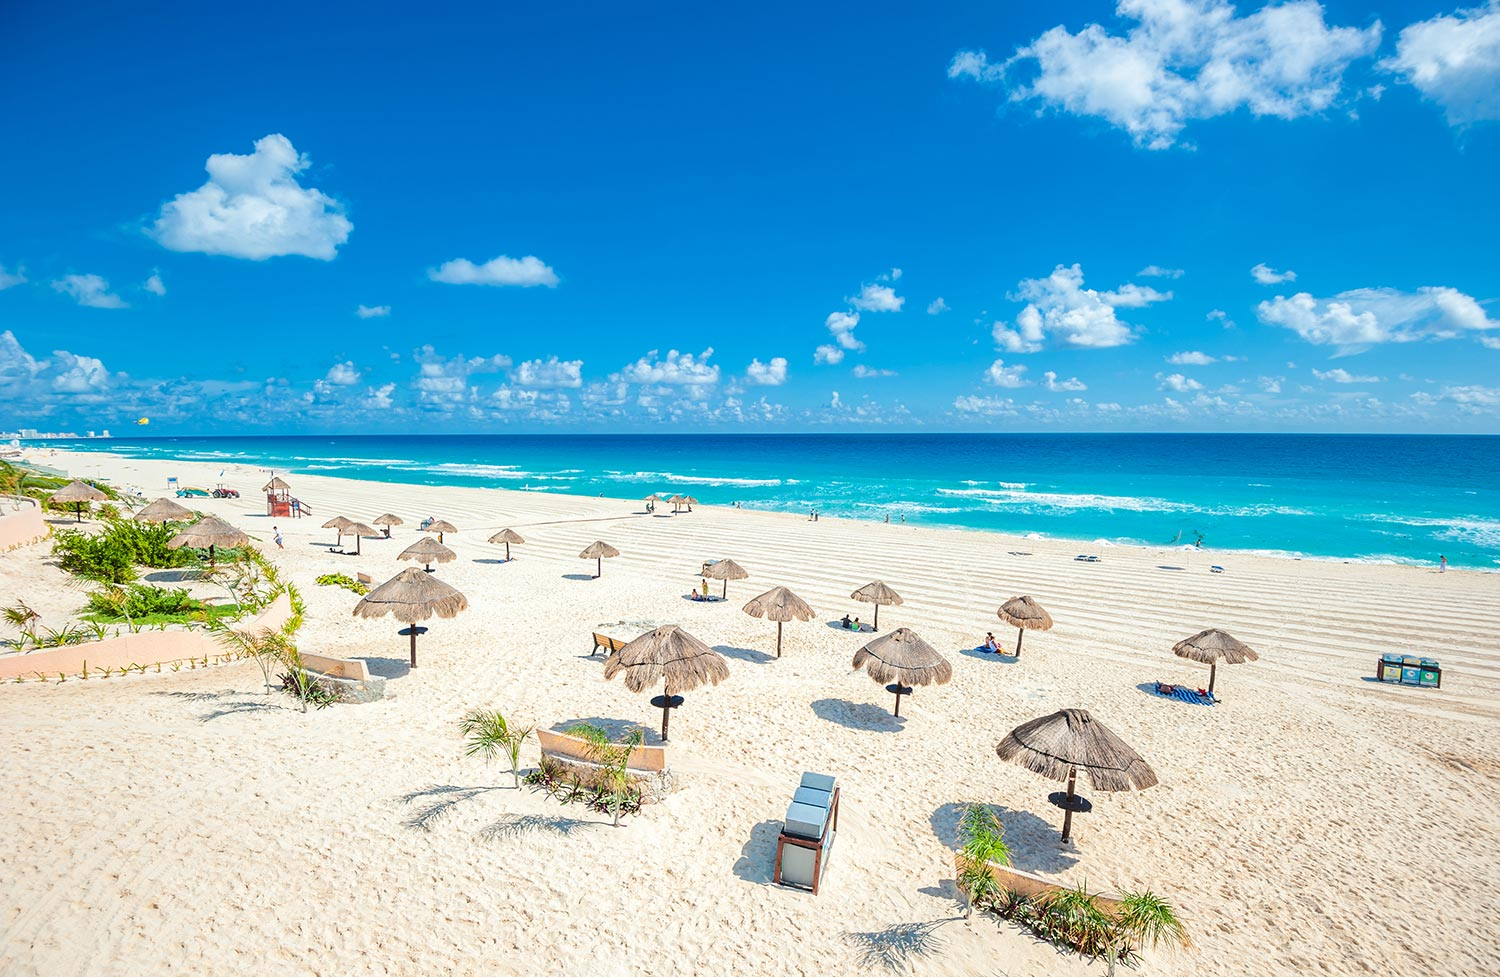 Beach umbrellas and chairs line the sand in Cancun